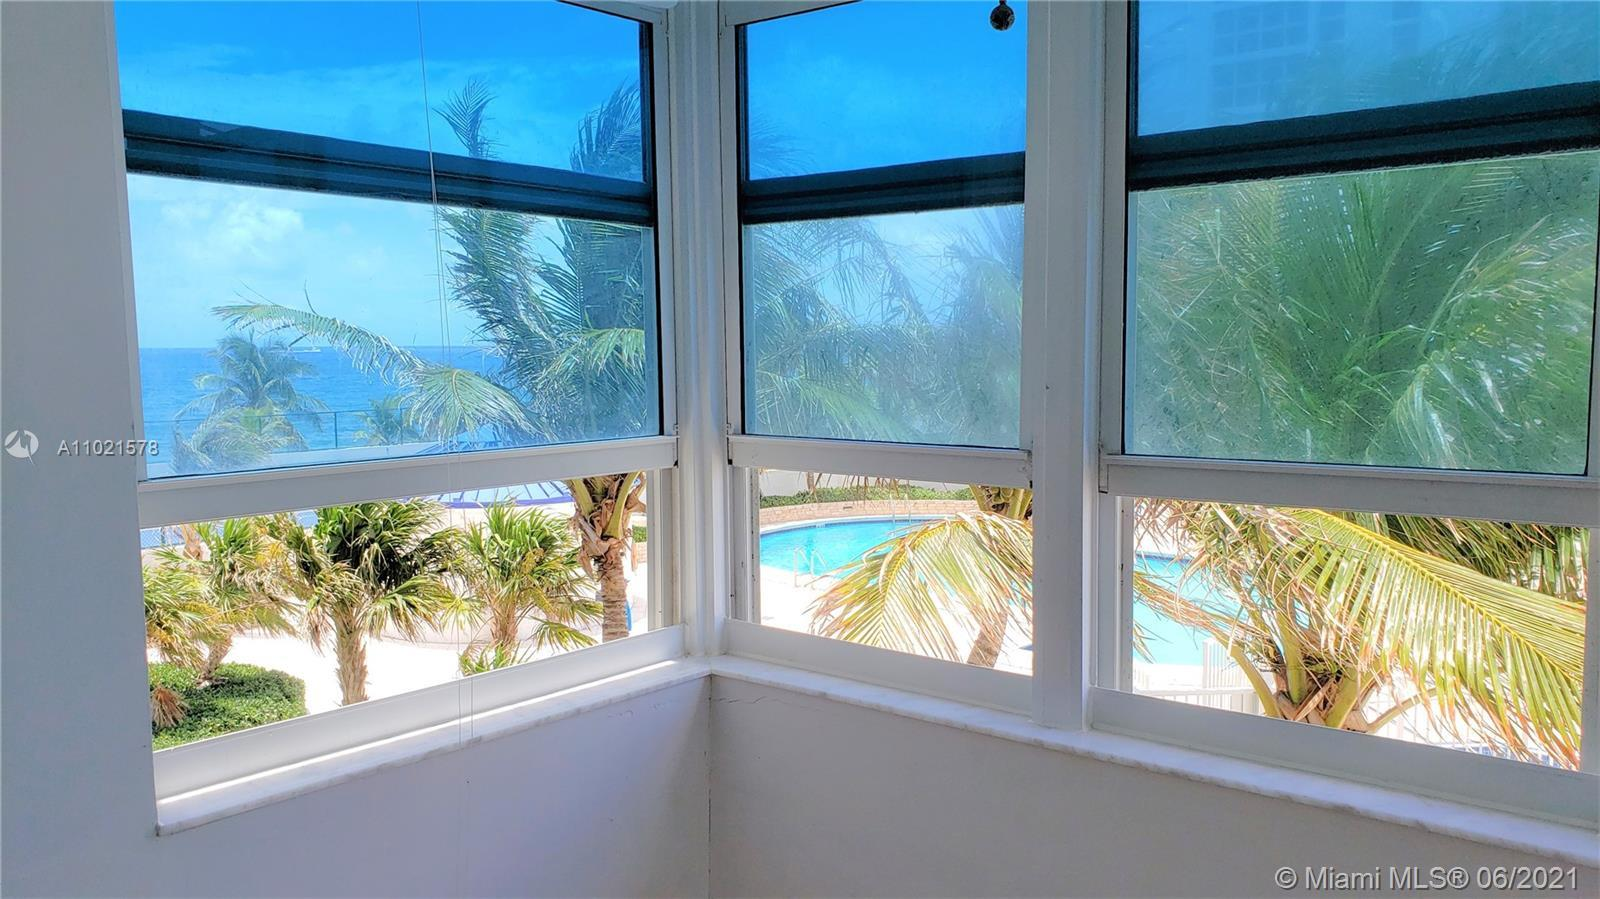 GREAT LOCATION AND AMAZING OCEAN VIEWS  , OPPORTUNITY KNOCKS AGAIN. THE BUILDING OFFER MANY AMMENITI